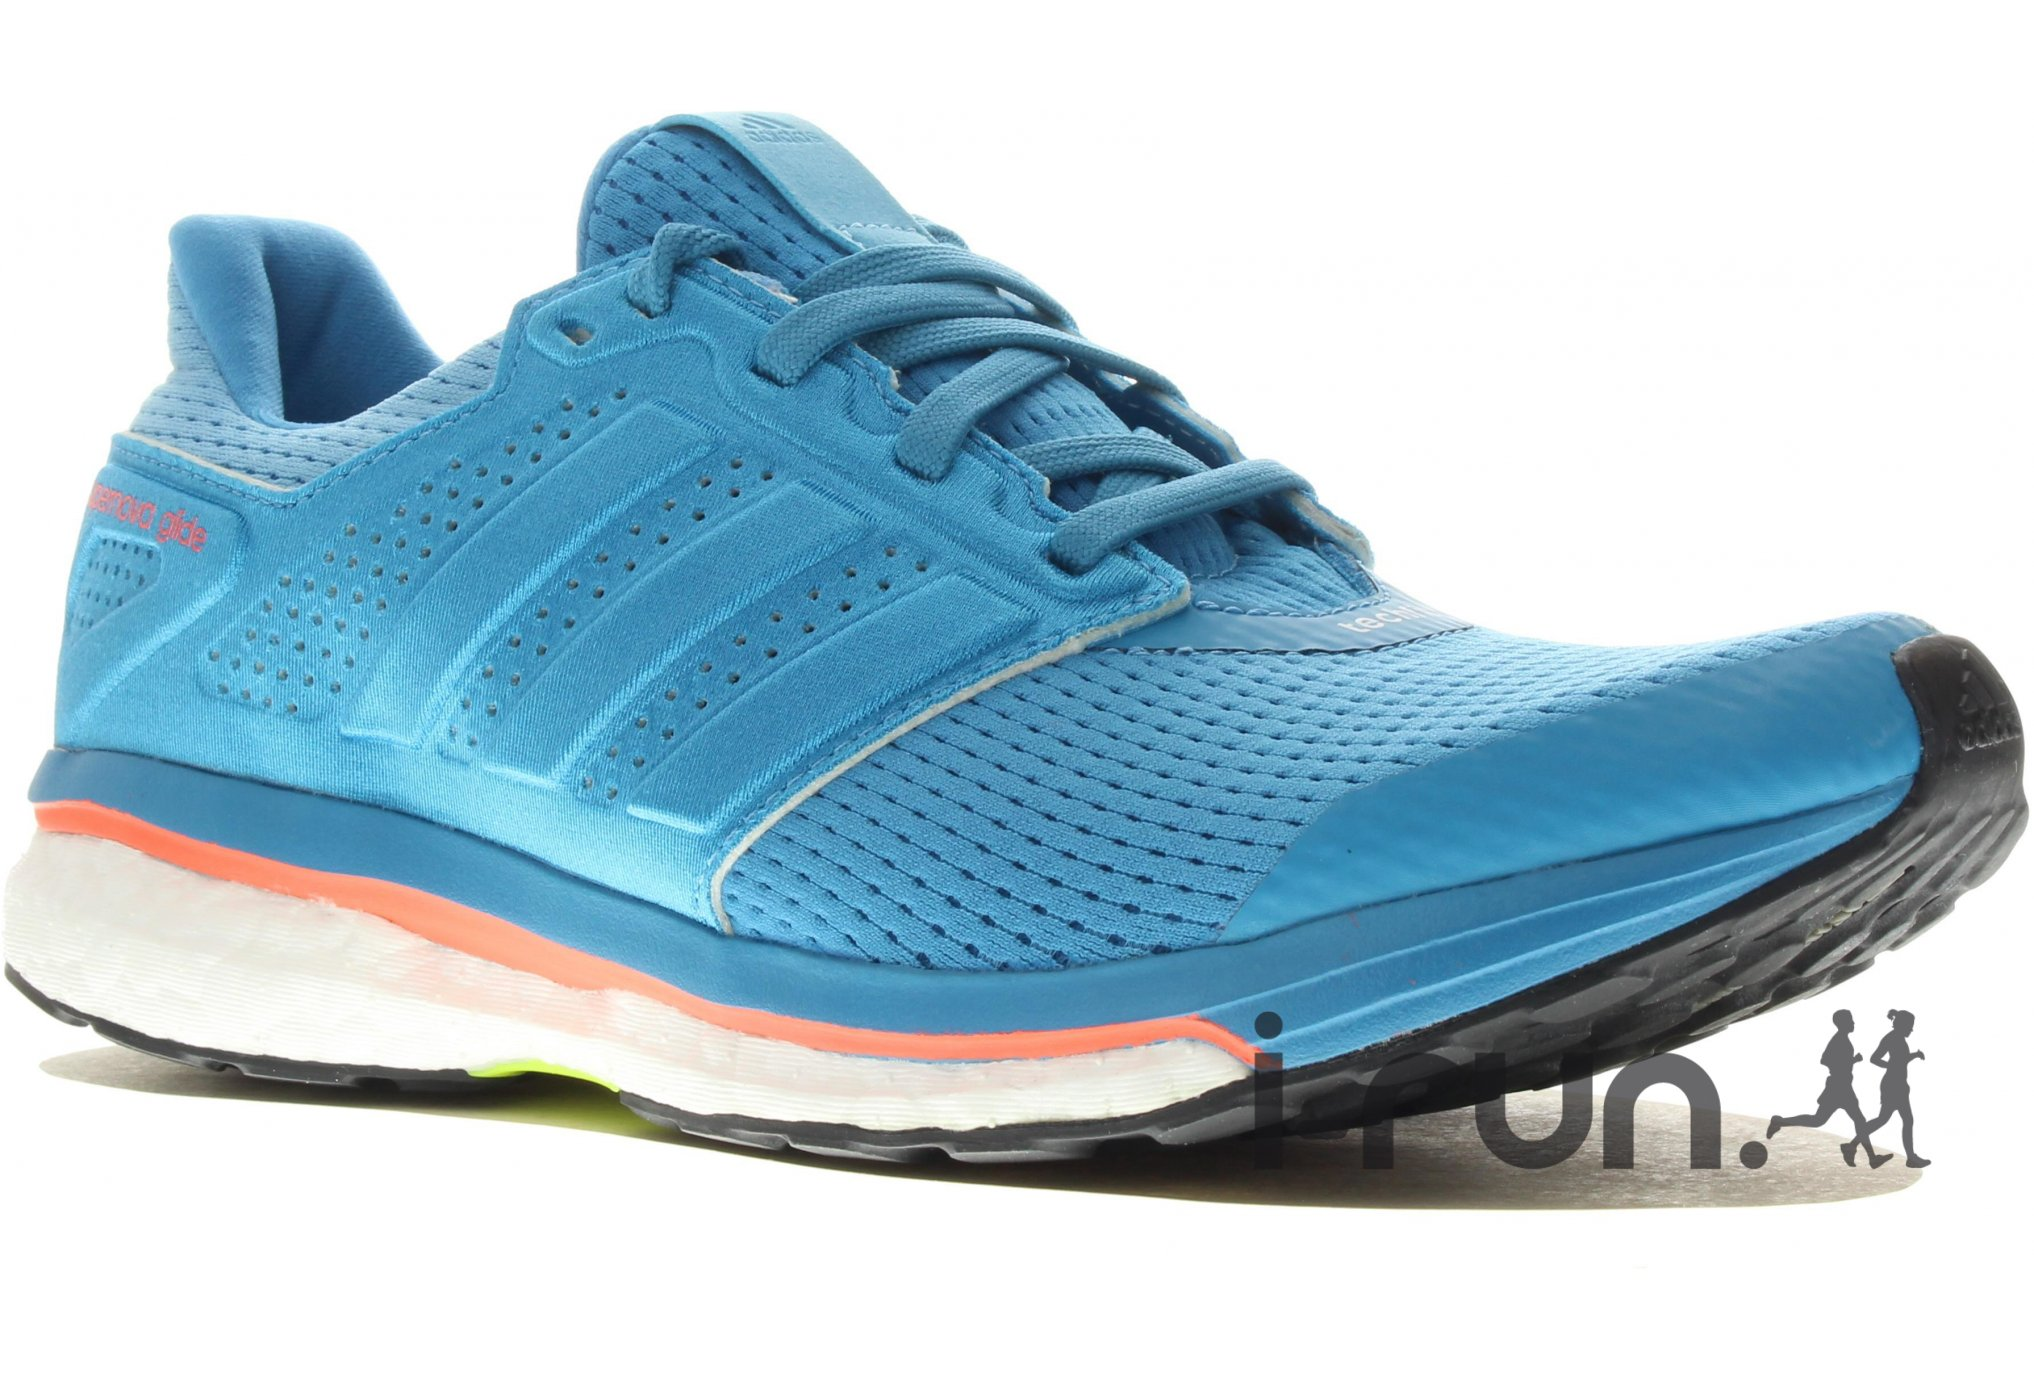 Trail Session adidas Supernova Glide 8 Boost W Chaussures